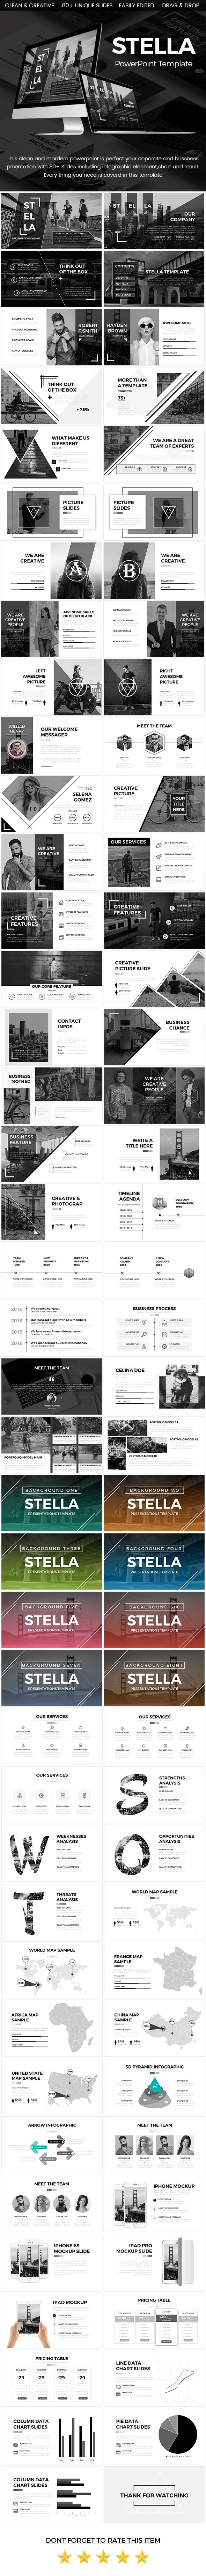 Stella - Creative Powerpoint Template